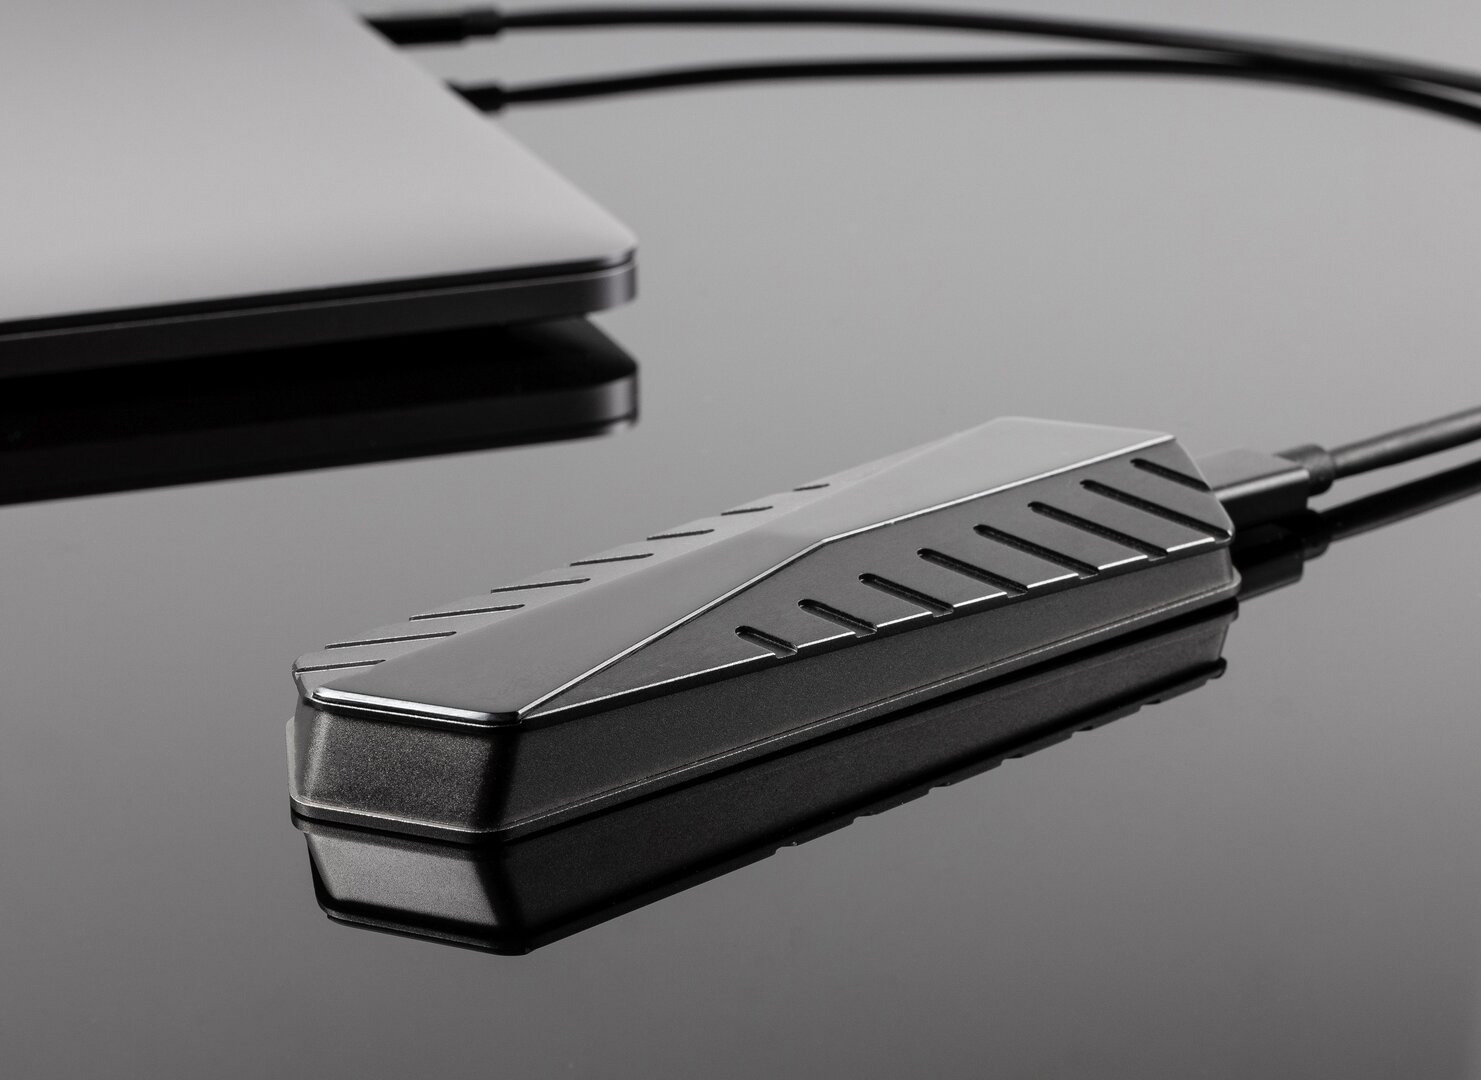 GigaDrive is the World's Fastest External SSD at werd.com